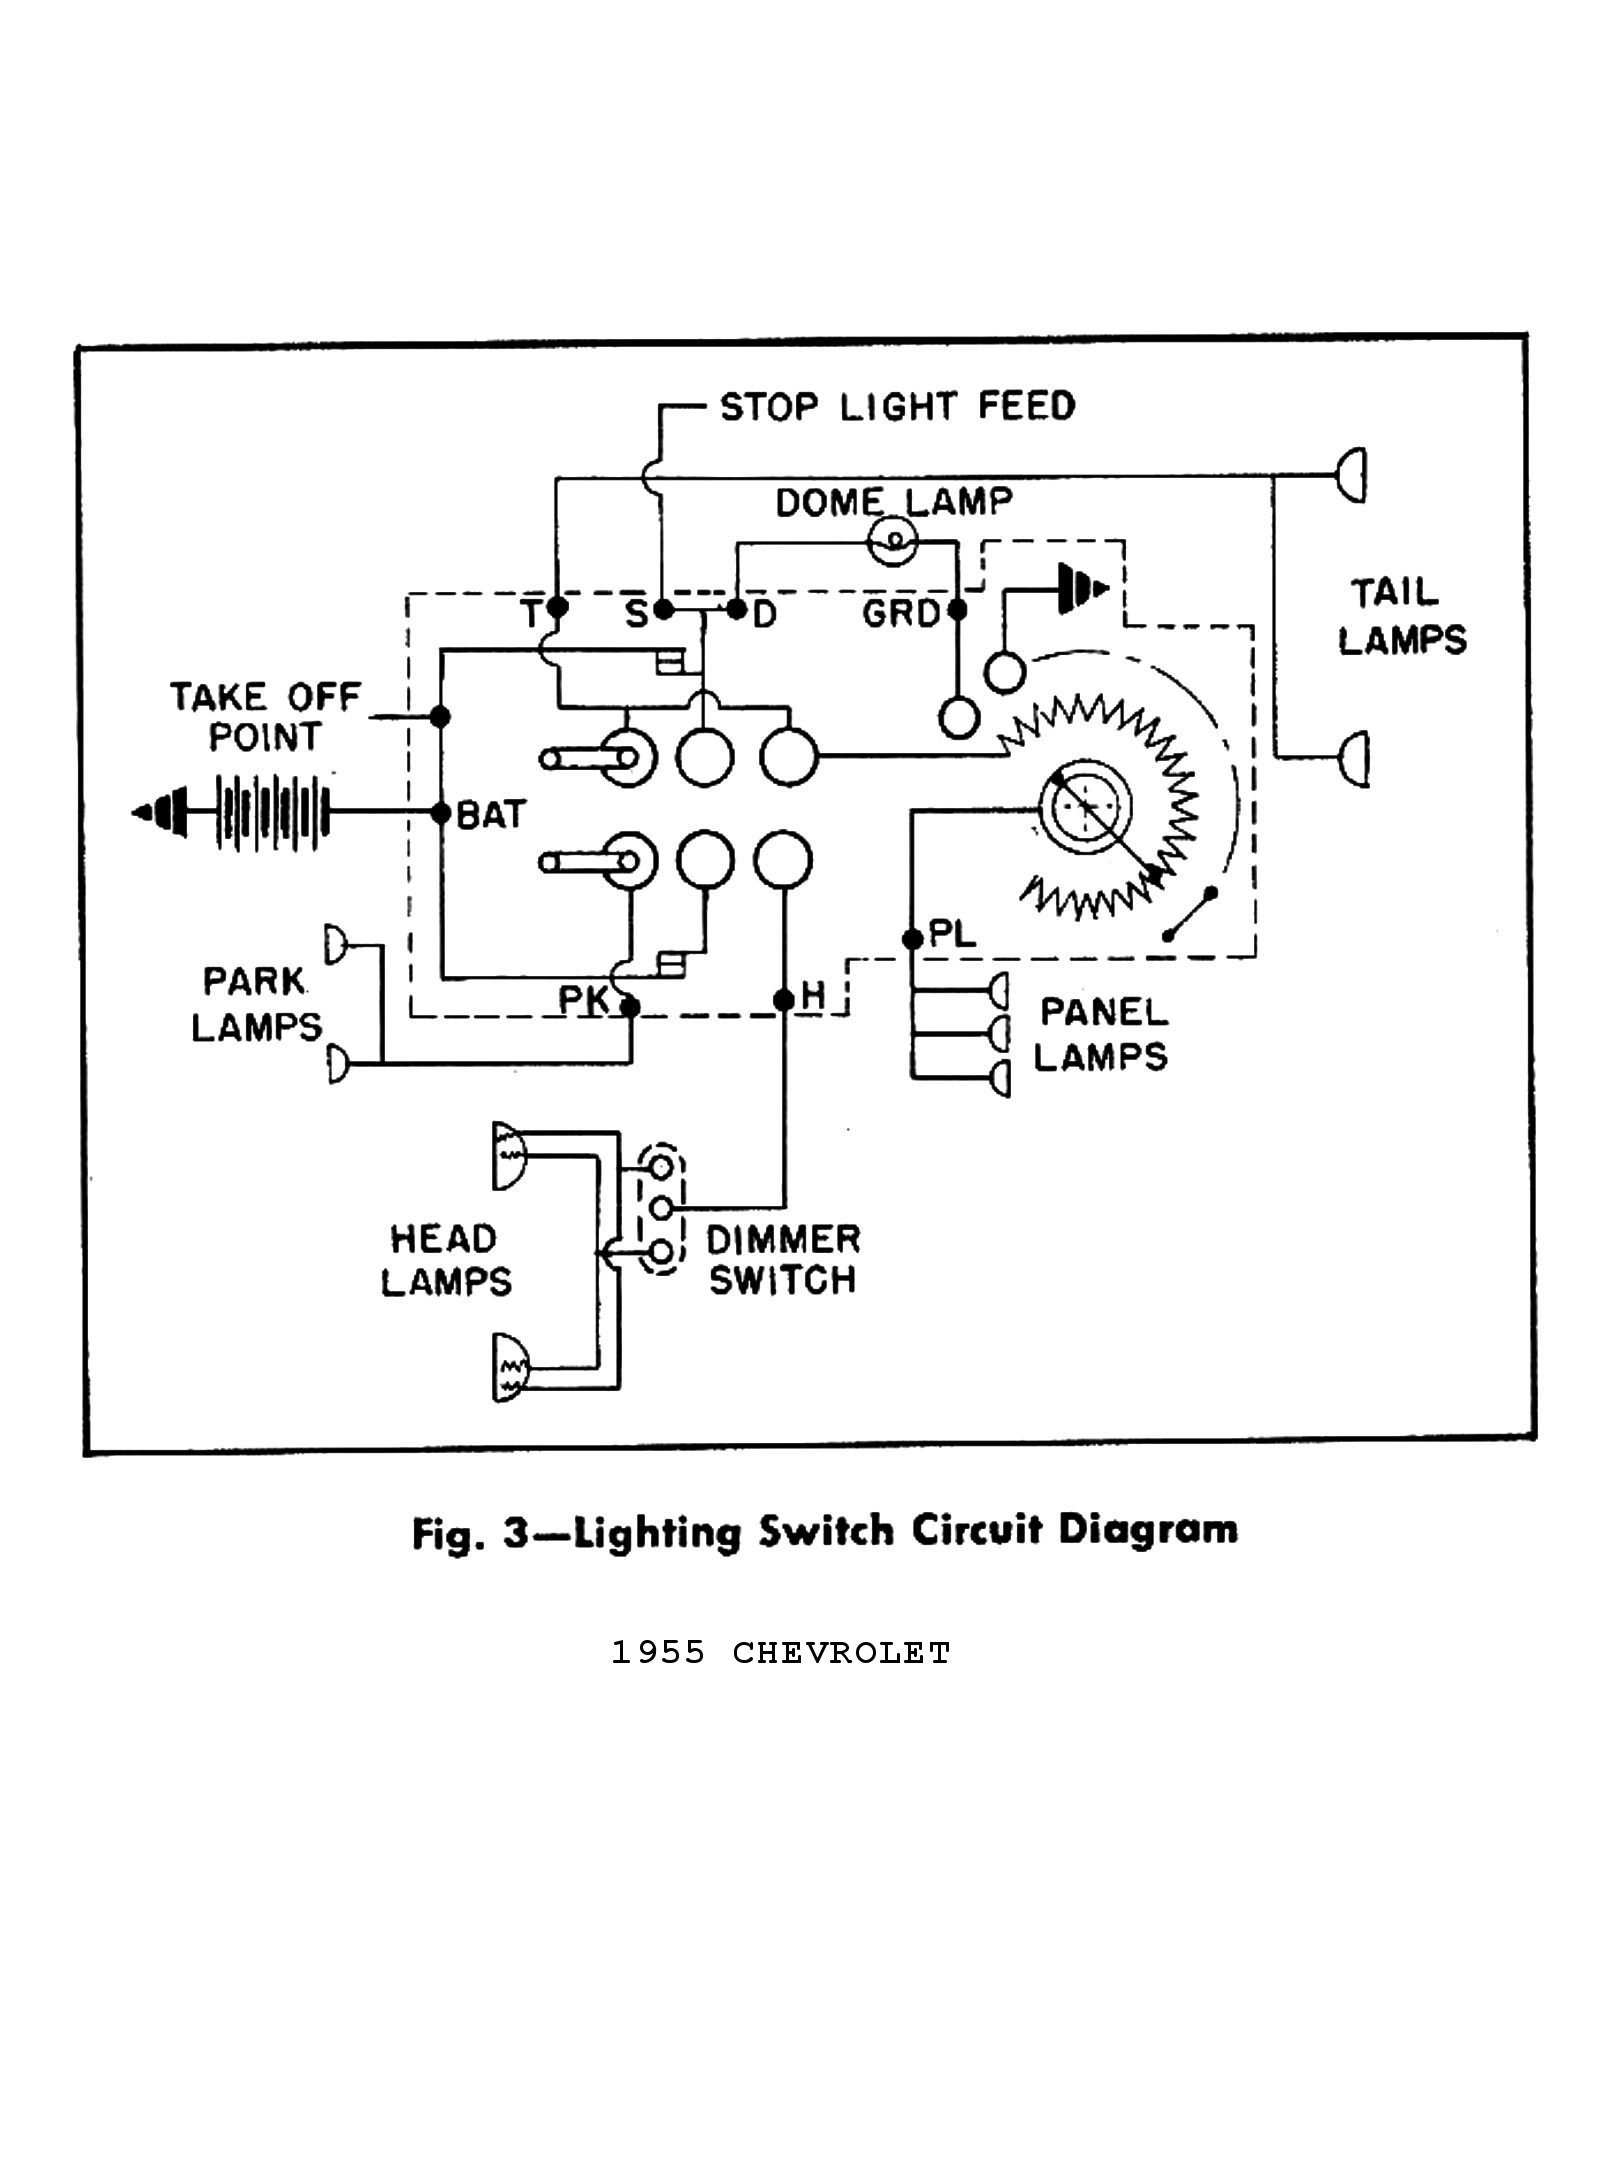 chevy wiring diagrams 1955 truck wiring diagrams · 1955 electric windows seats · 1955 lighting switch circuit